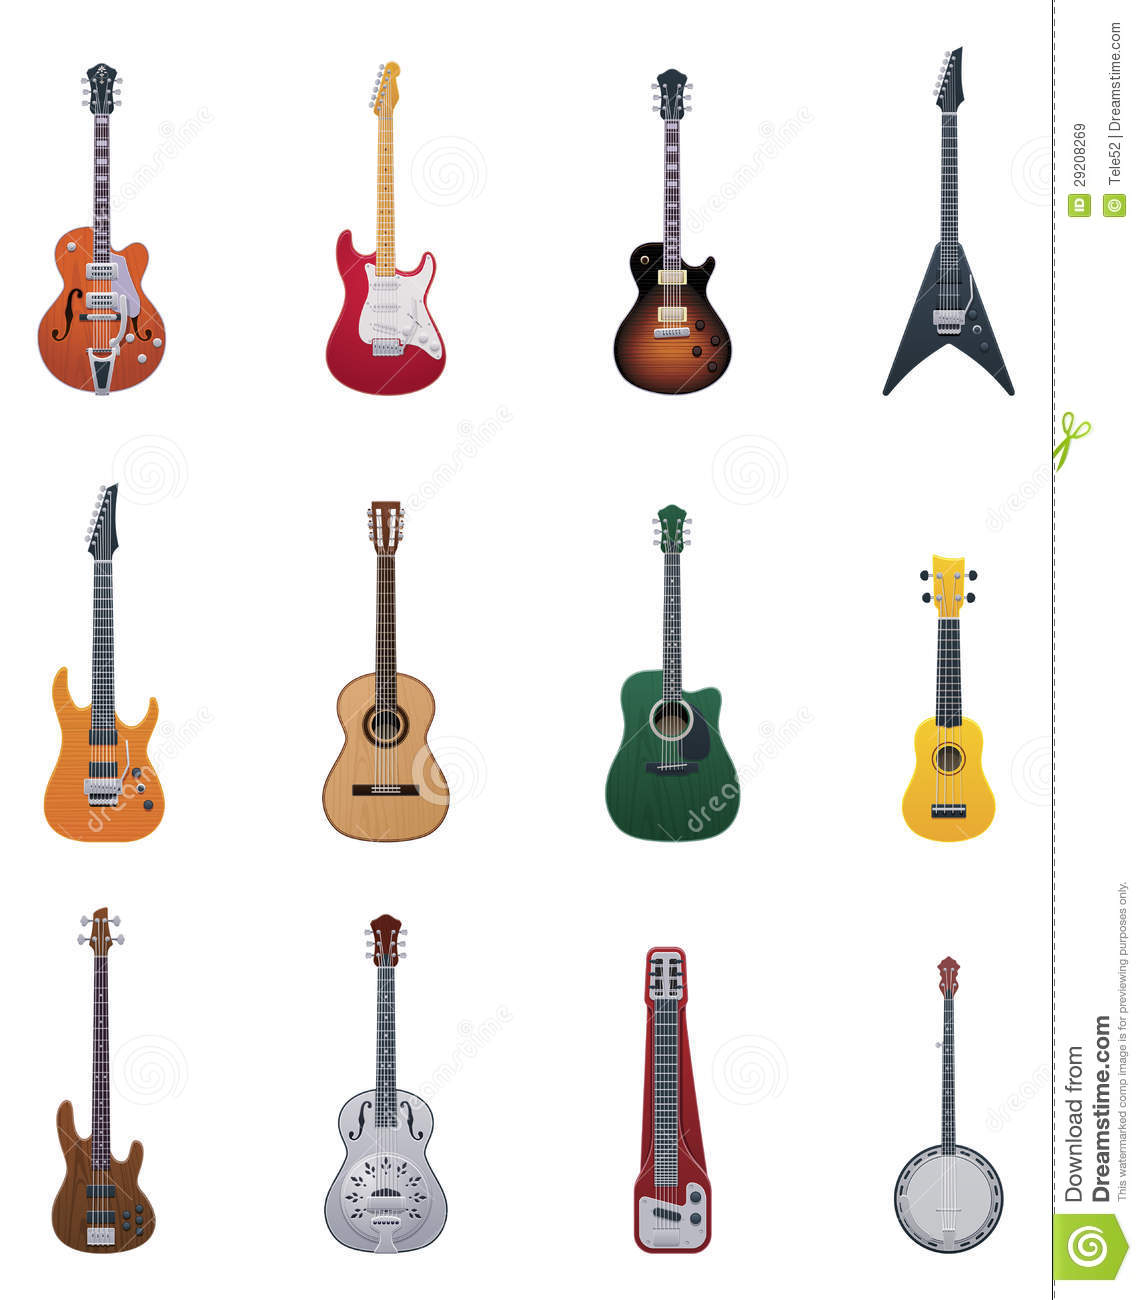 vector guitars icon set stock vector illustration of resonator 29208269. Black Bedroom Furniture Sets. Home Design Ideas